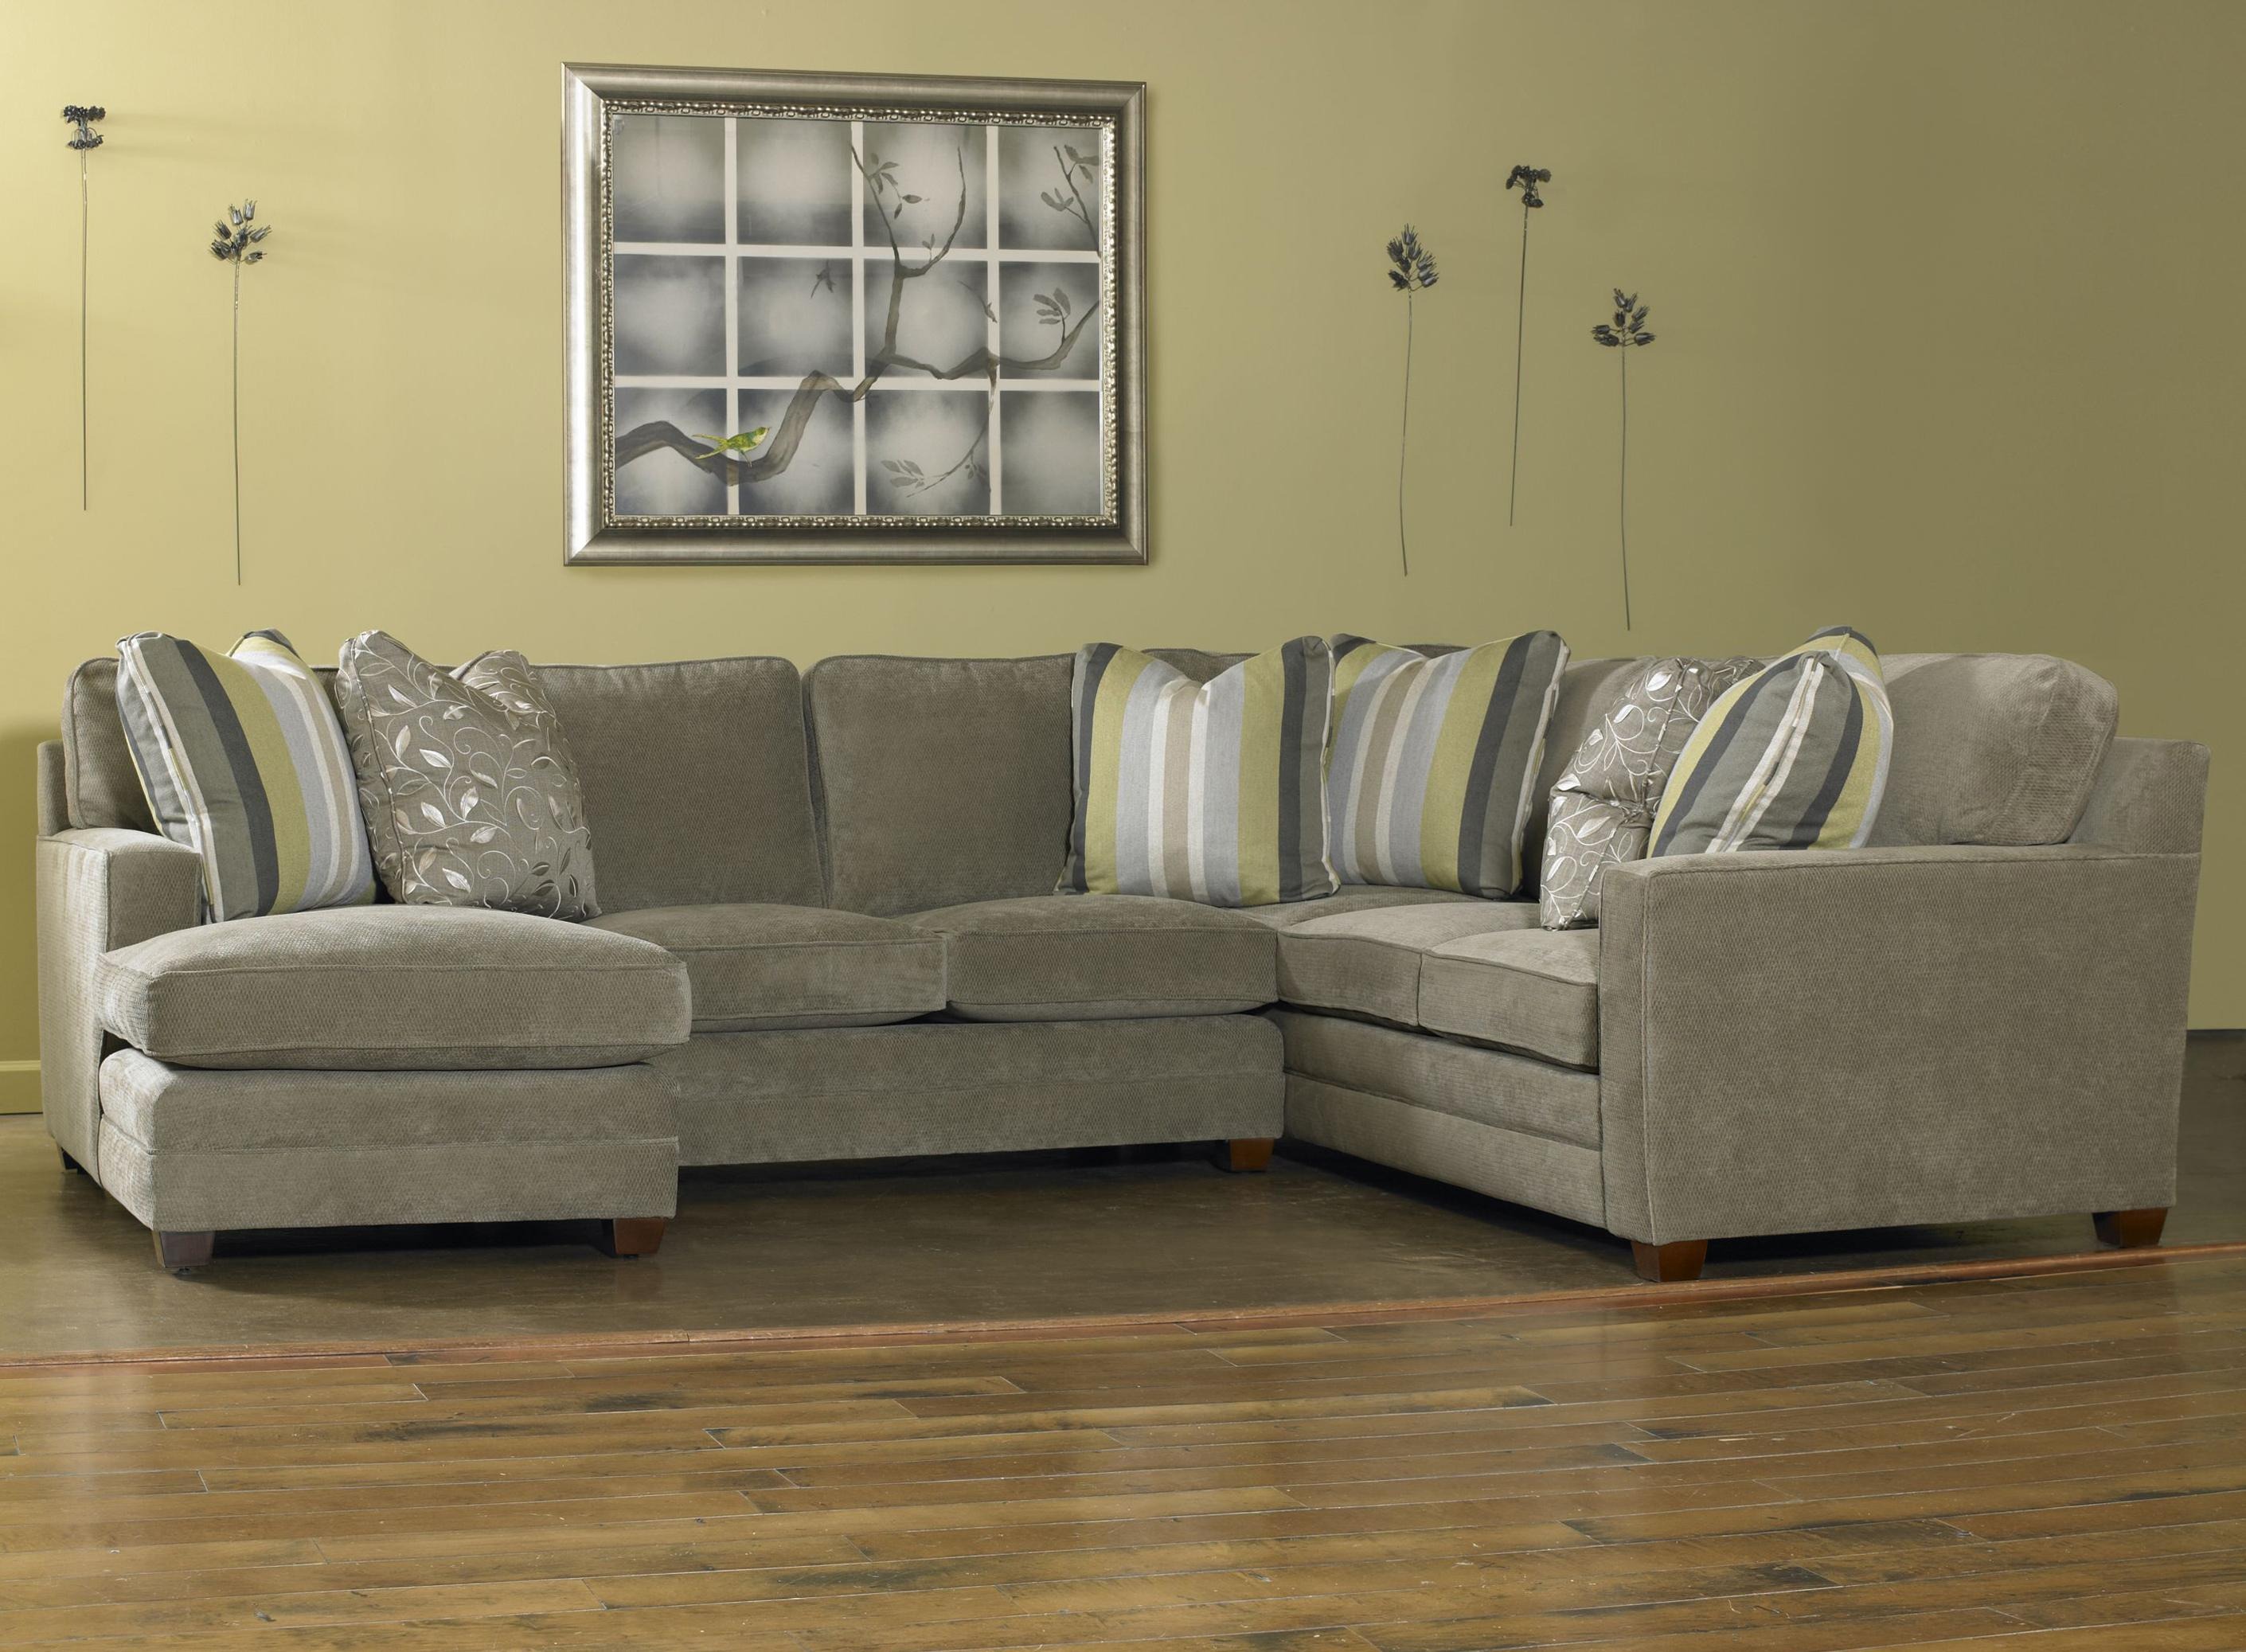 Contemporary three piece sectional sofa w laf chaise by for 3 piece sectional with chaise